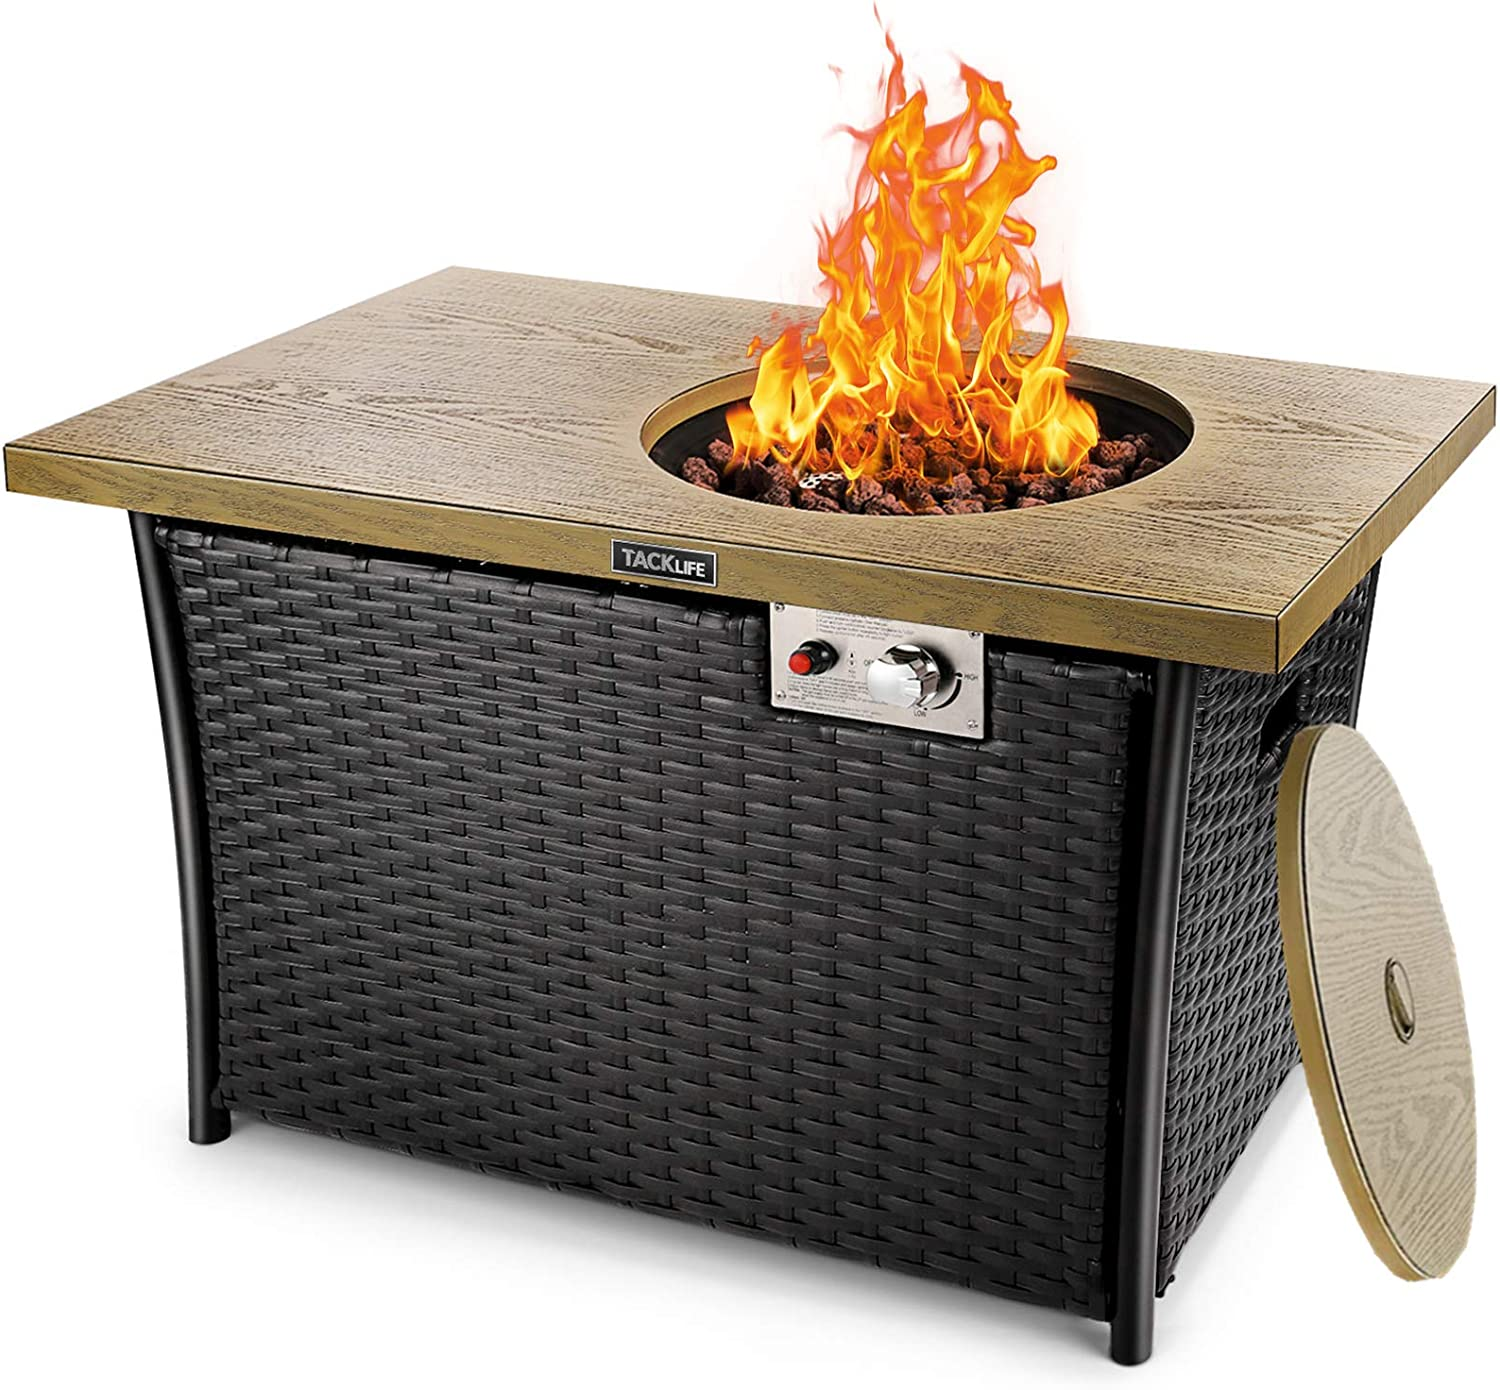 Amazon Com Tacklife 50 000 Btu Propane Gas Fire Pit Table Steel Imitation Wood Grain Surface With Weather Resistant Lid Lava Rock Etl Certification Pure Artificial Rattan Design 41in Fireplace For Outdoor Garden